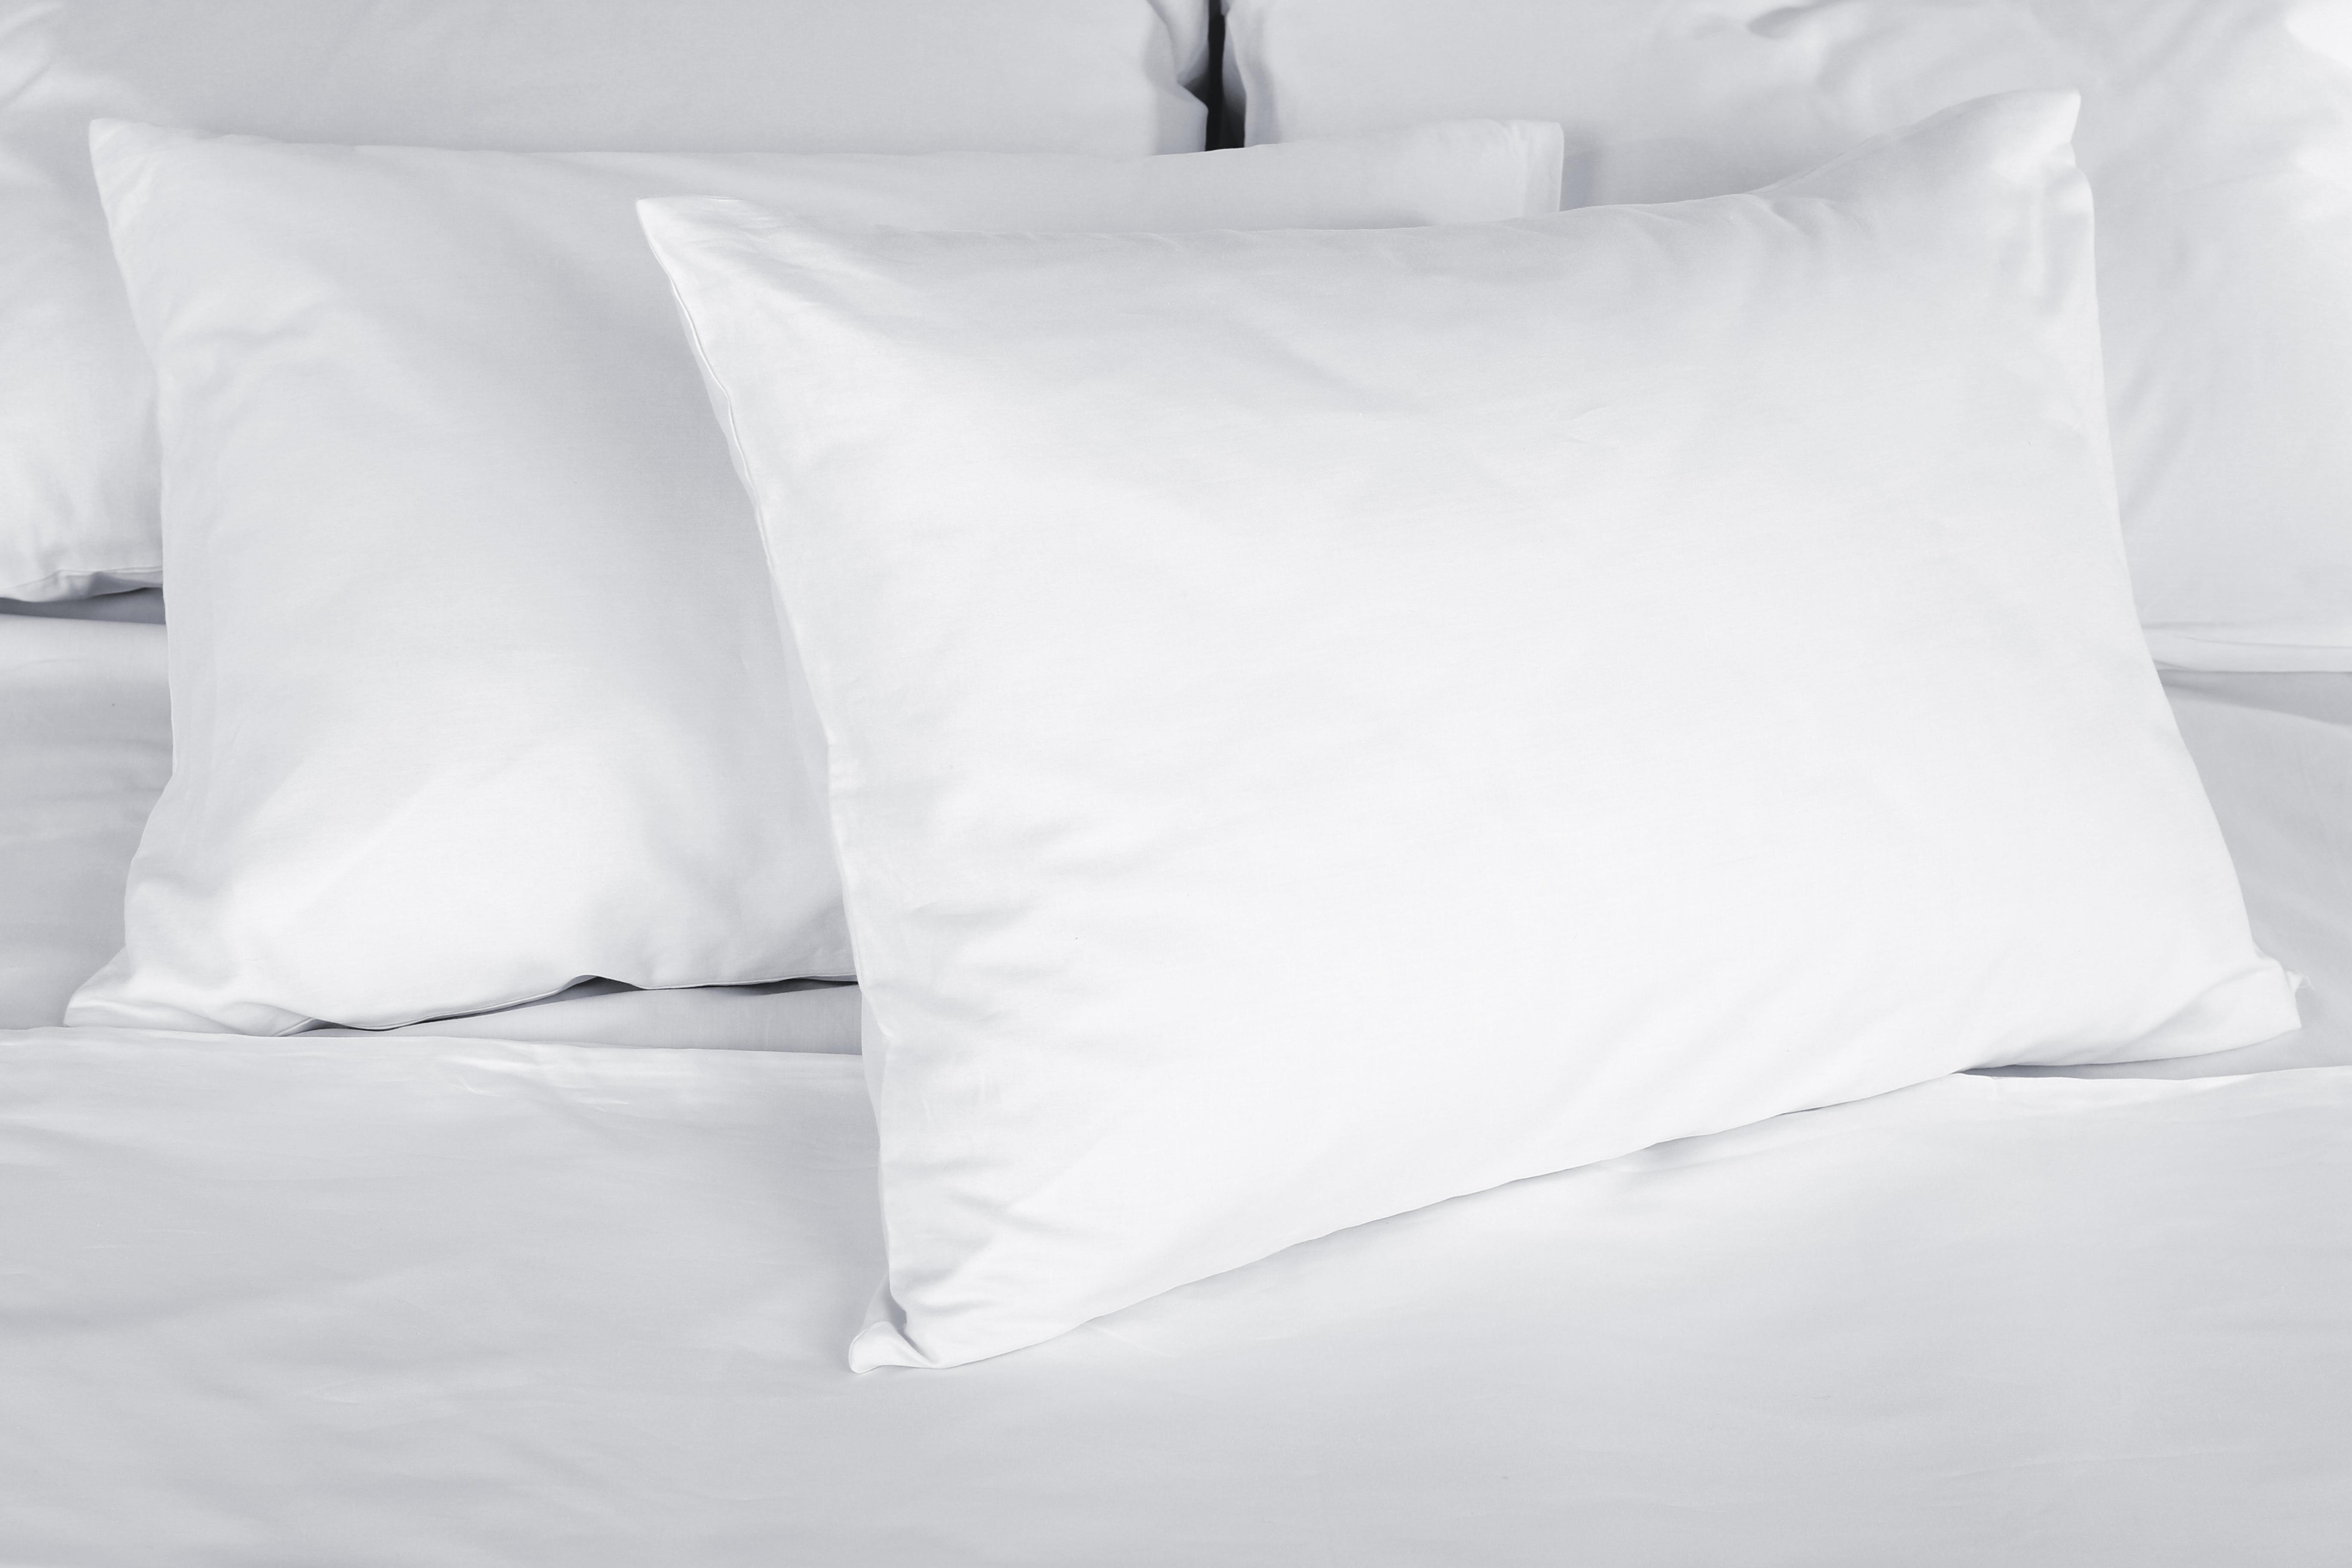 Fluffy white pillows across a soft white bed.